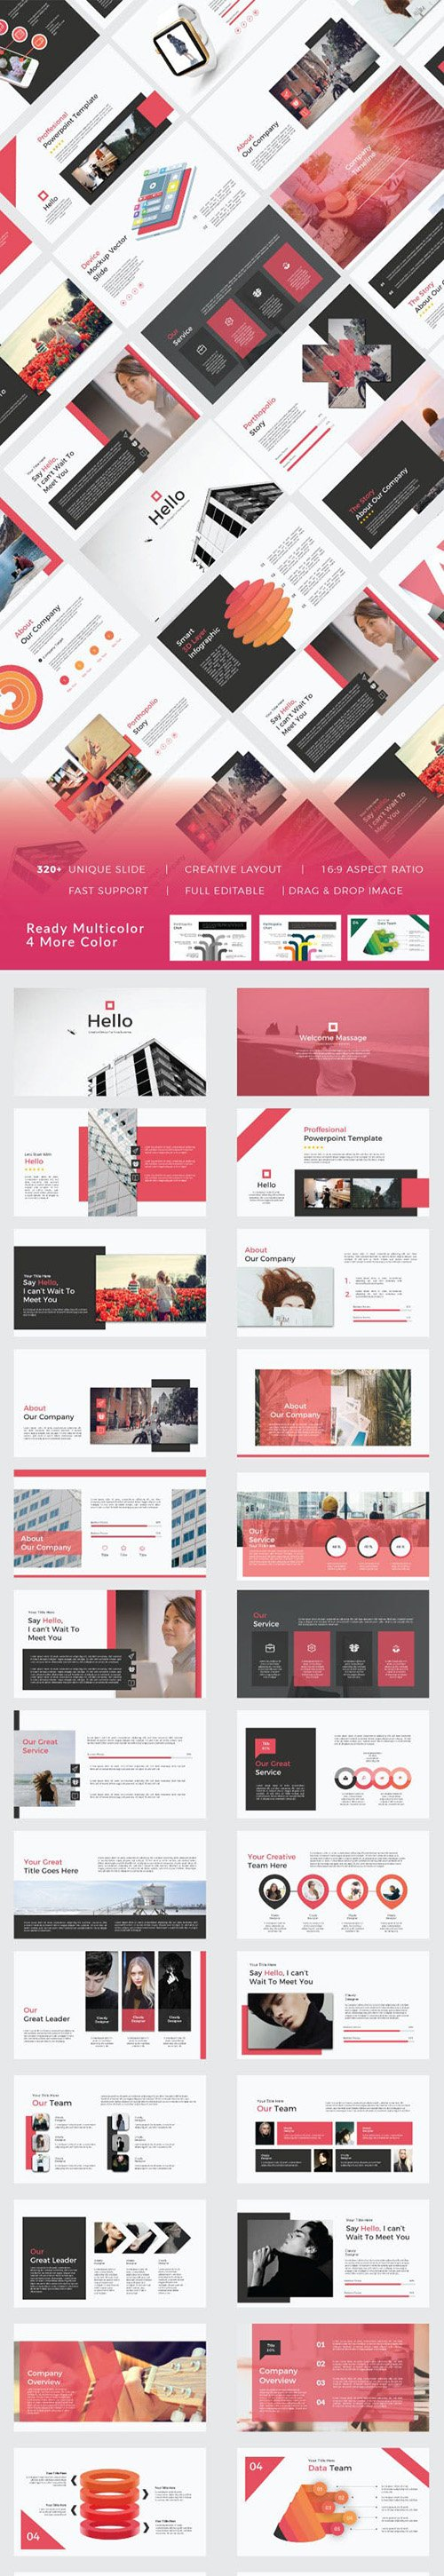 Hello Creative Design For Your Business 21607897